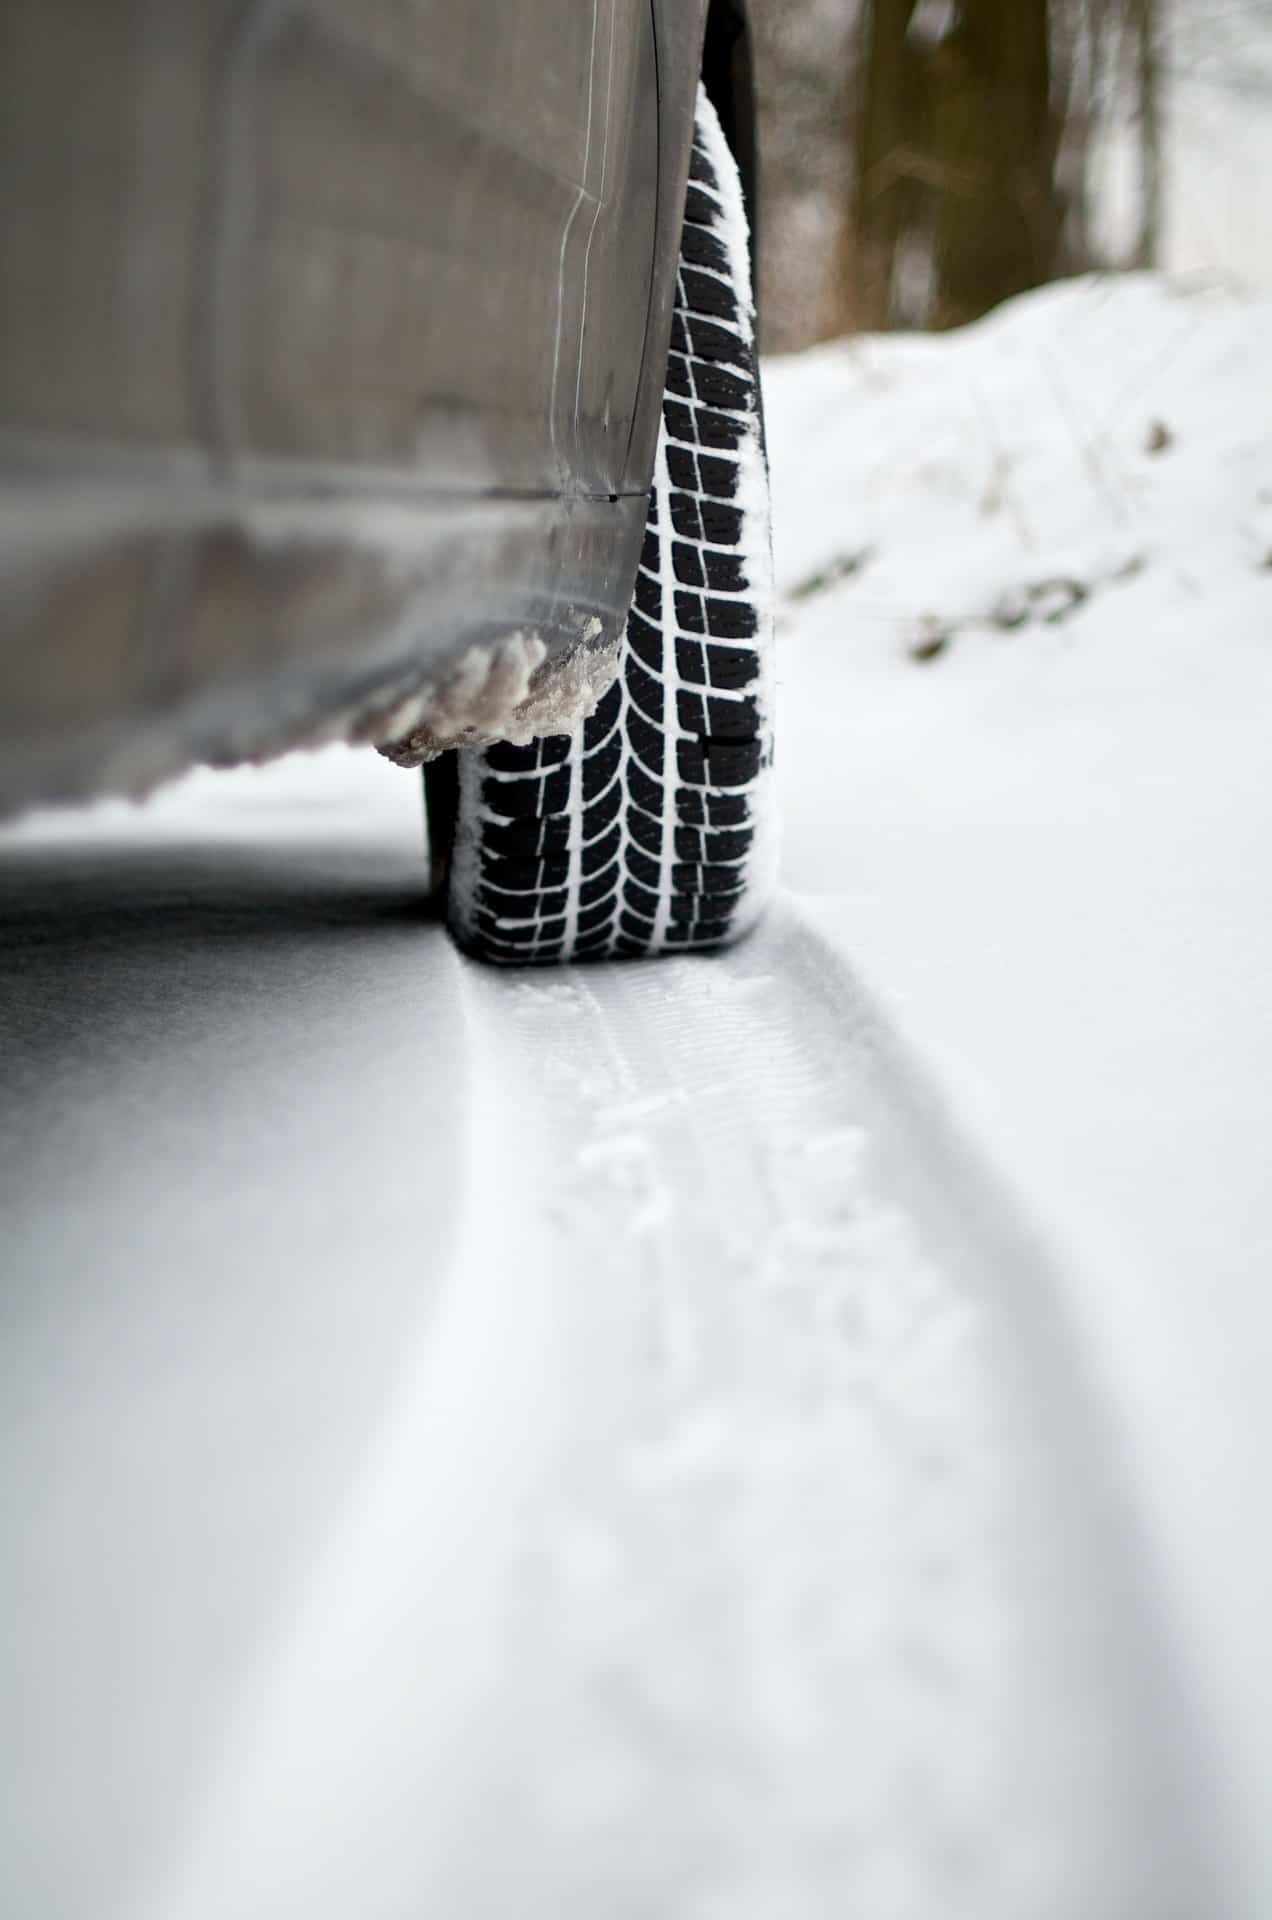 Is Your Vehicle Prepared?